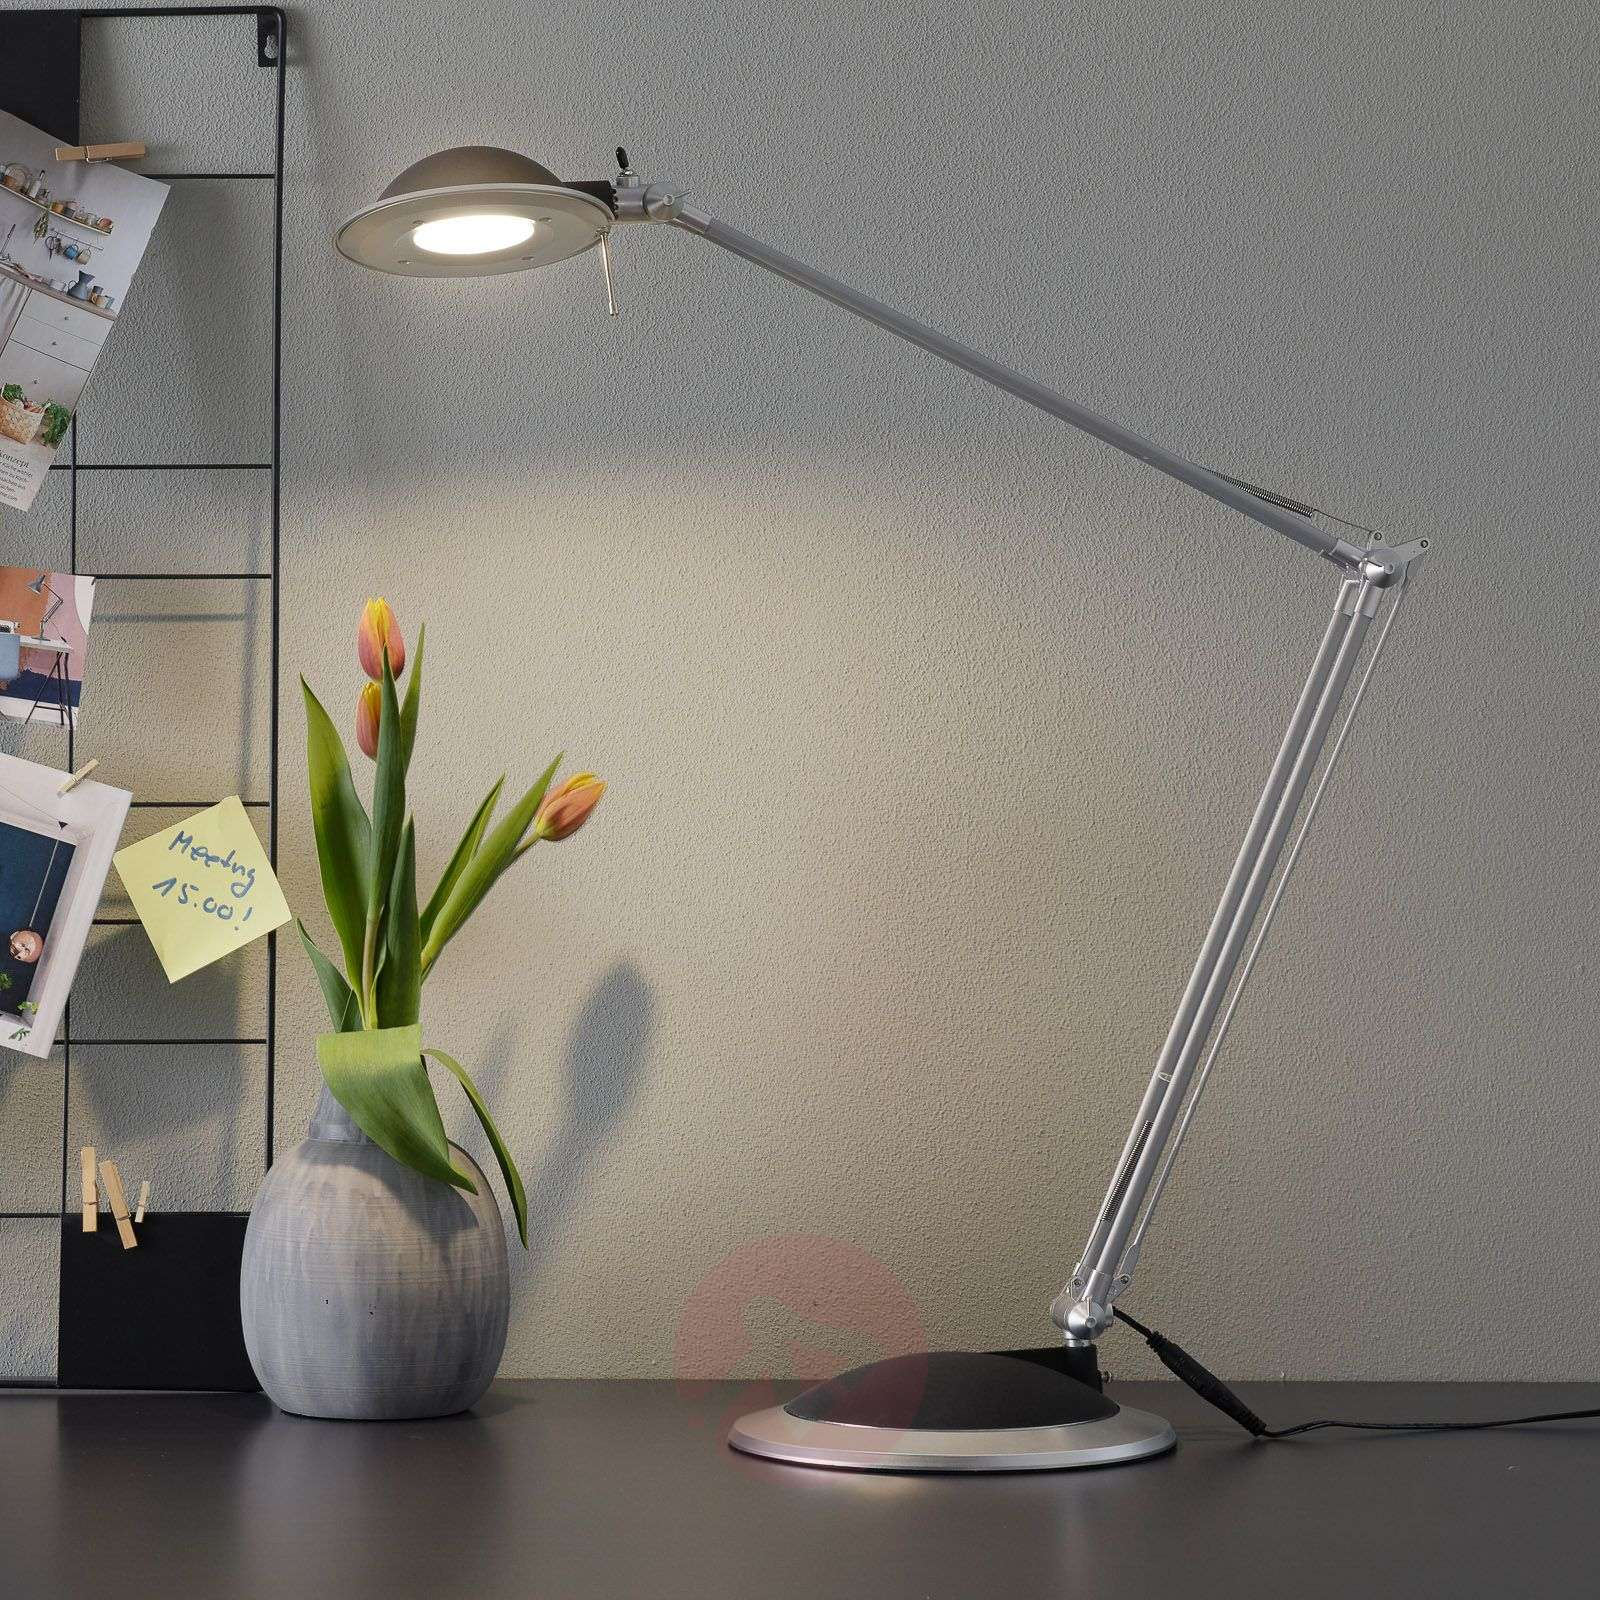 Lampe à poser LED Business efficace en énergie-6509085-01